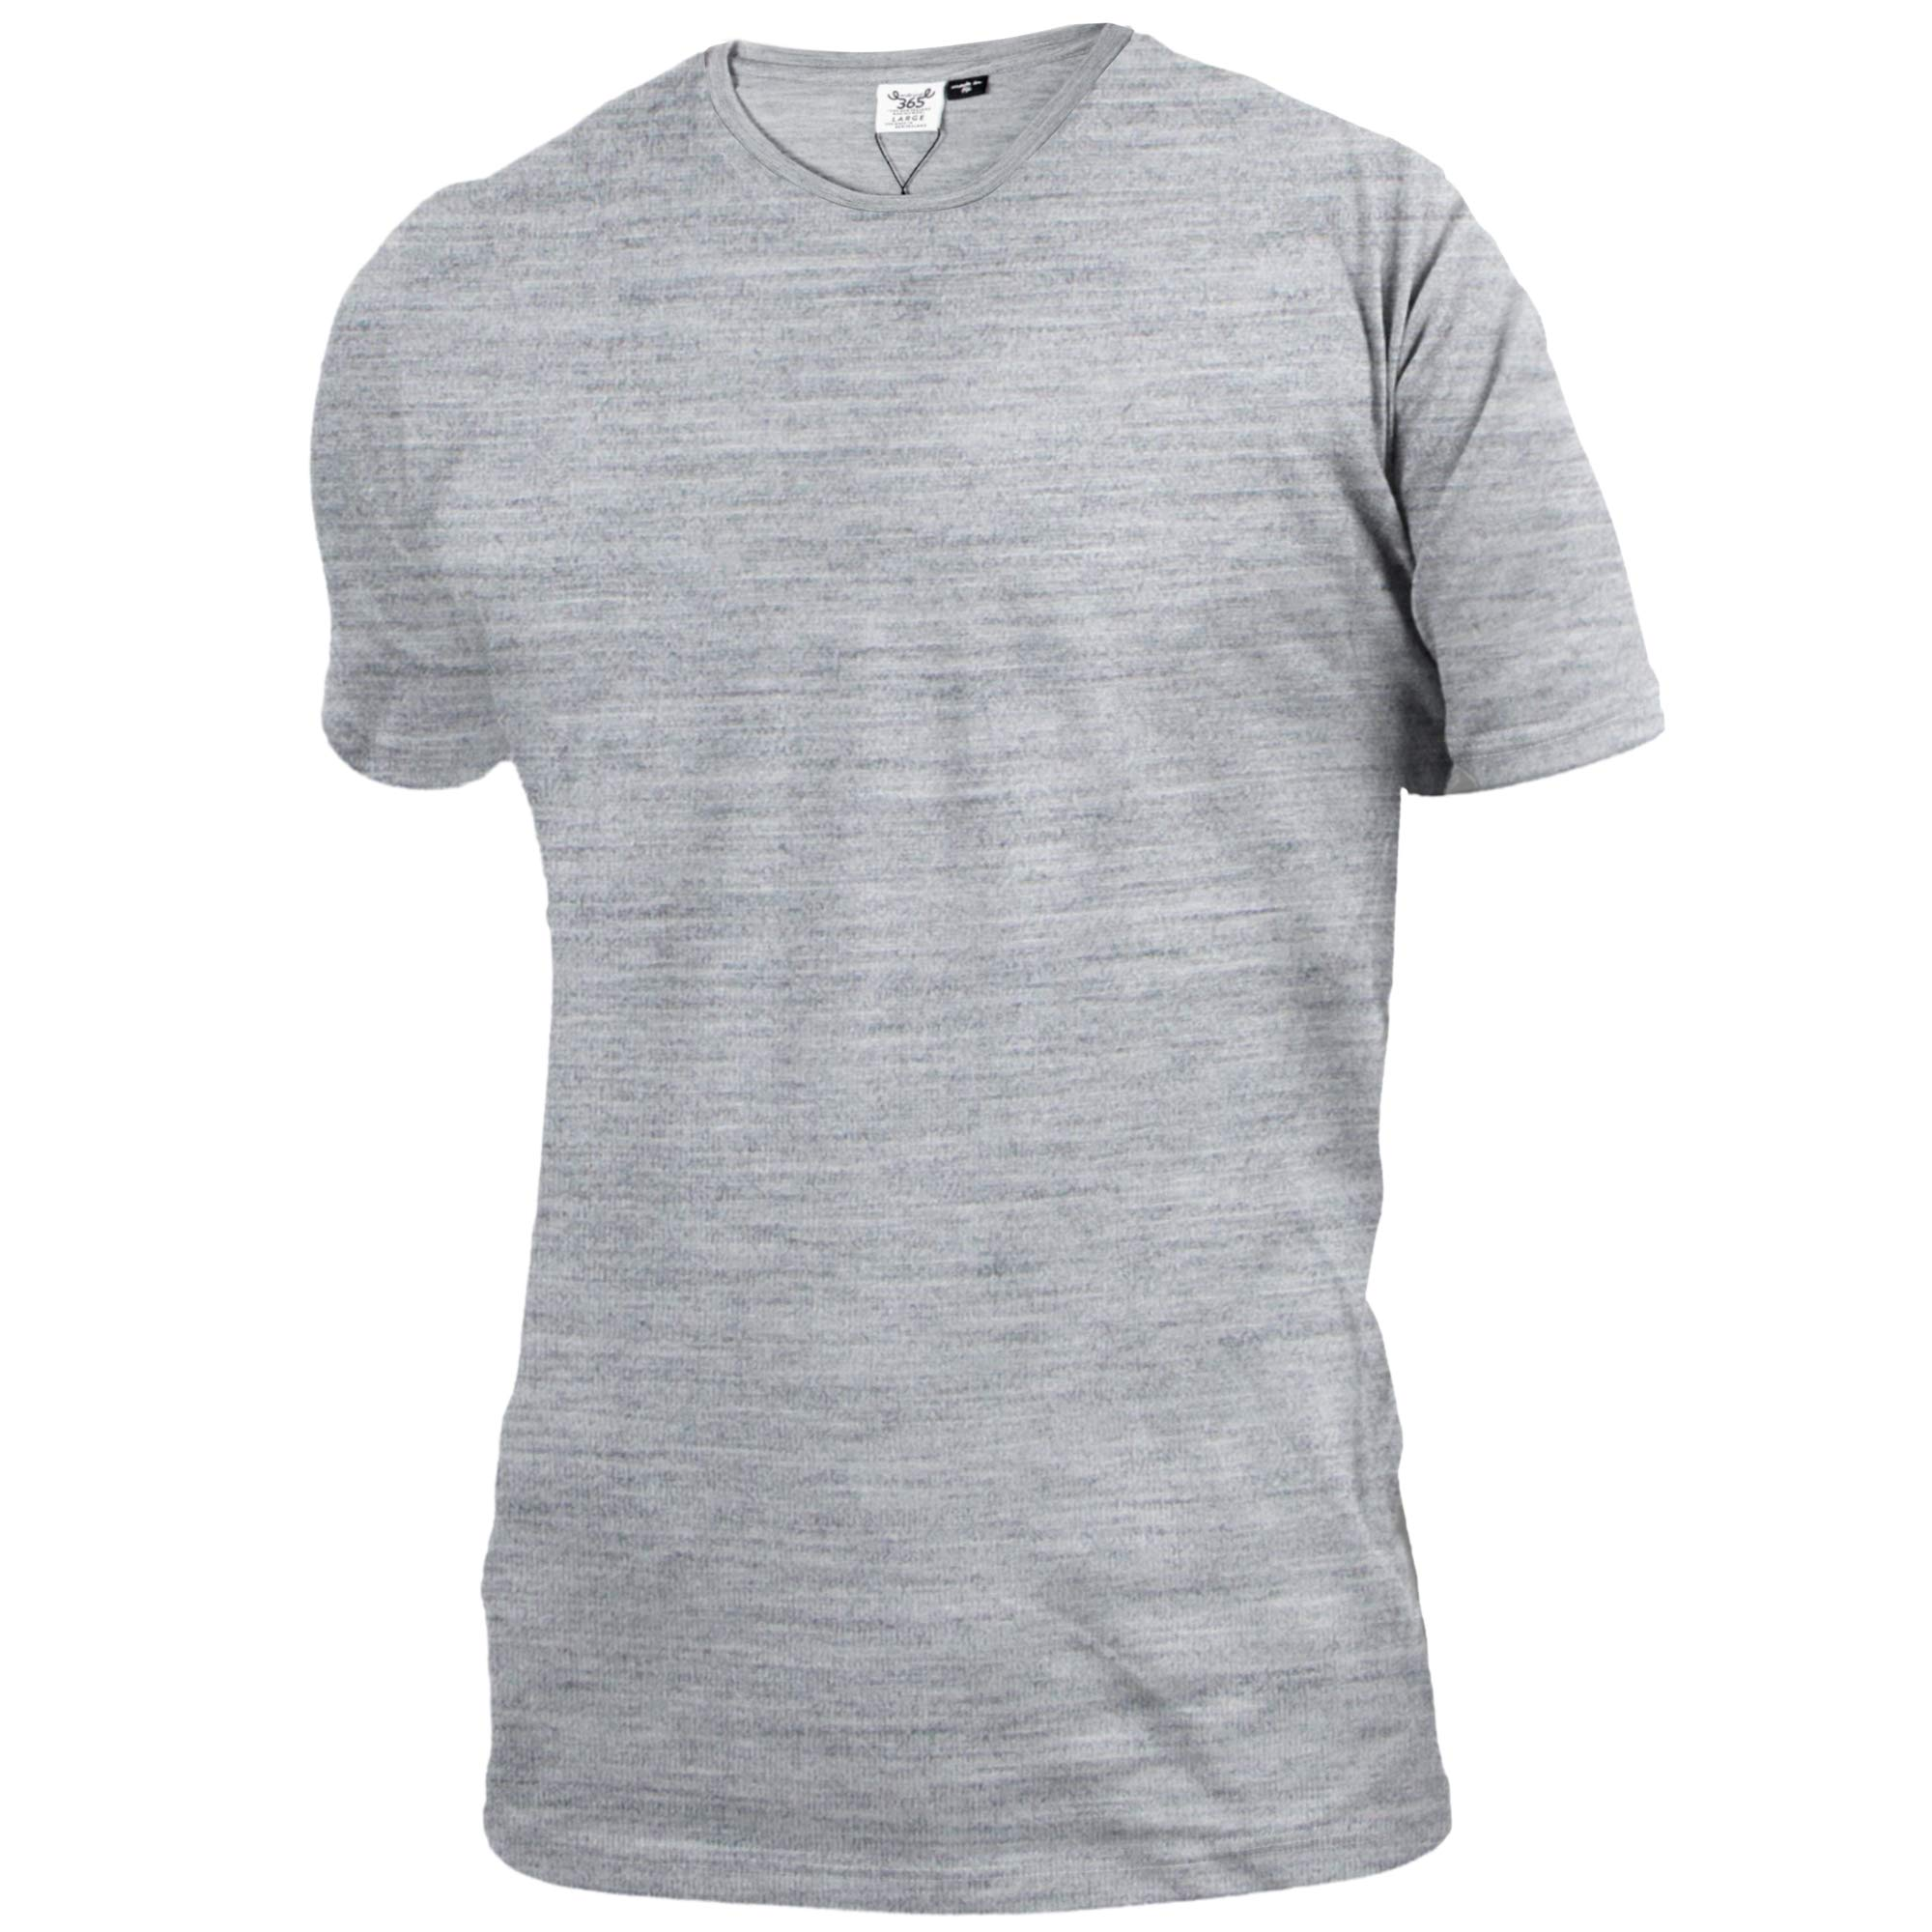 Merino 365 Men's Crew Short Sleeve Large, Heather Grey by Merino 365